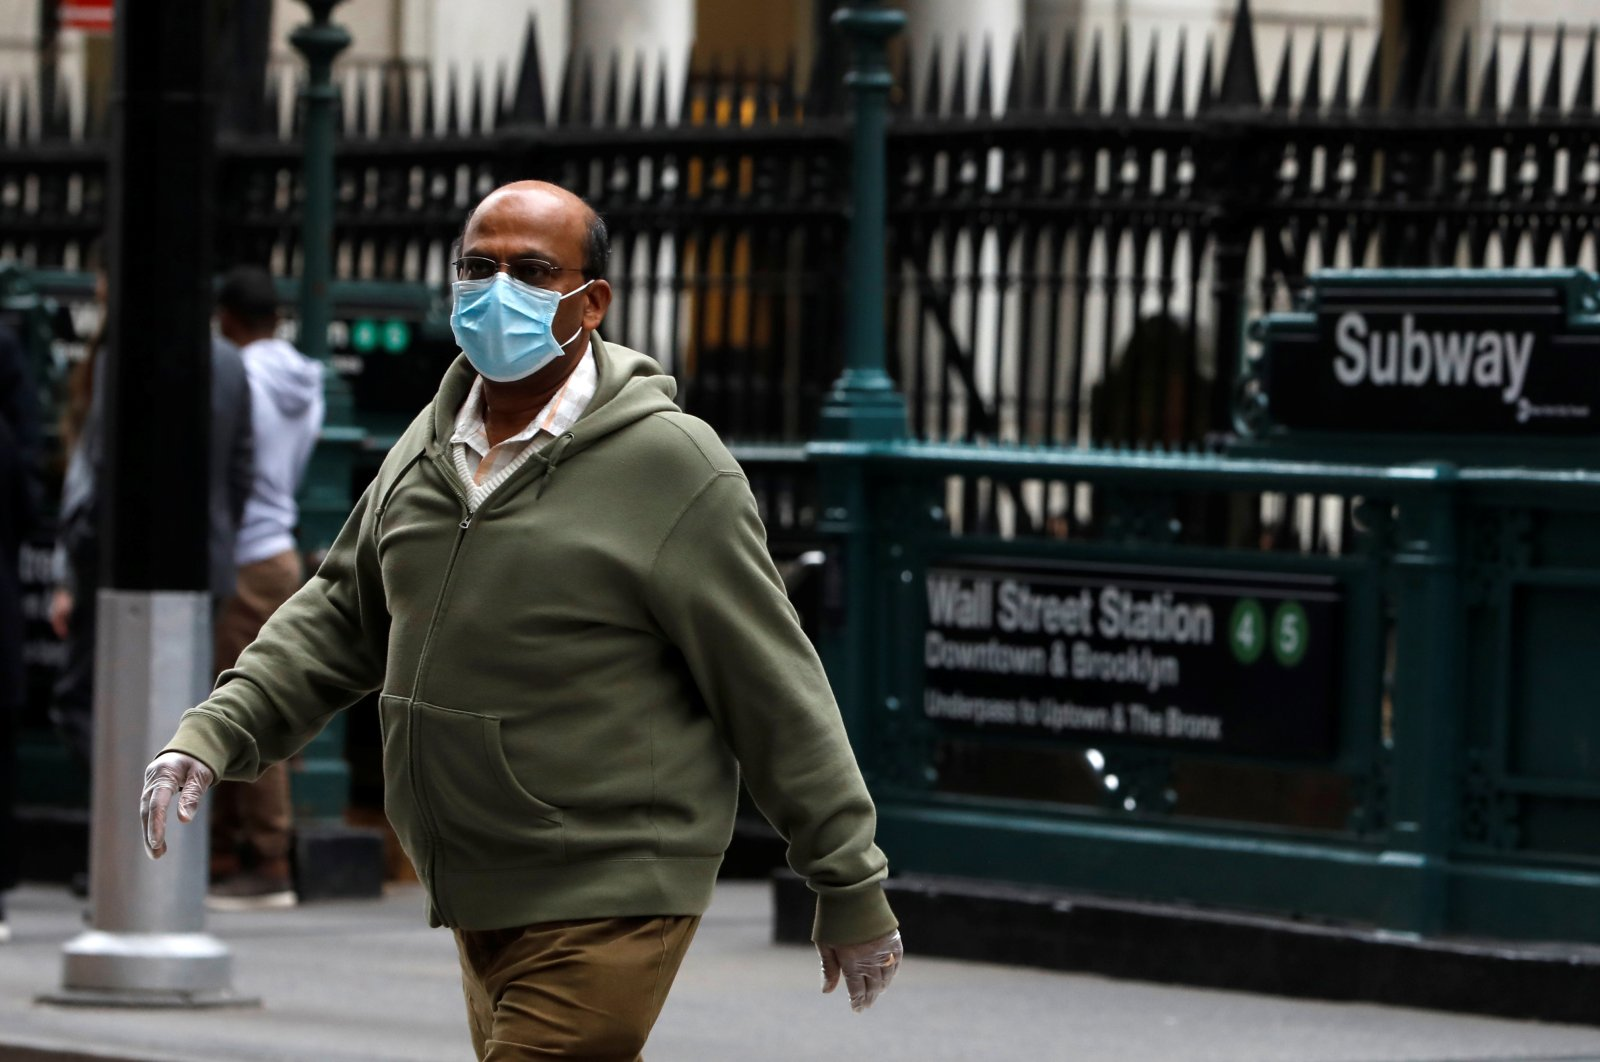 A man in a surgical mask and rubber gloves crosses Broadway in front of the Wall Street subway station after more cases of coronavirus were confirmed in New York, March 10, 2020. (Reuters Photo)